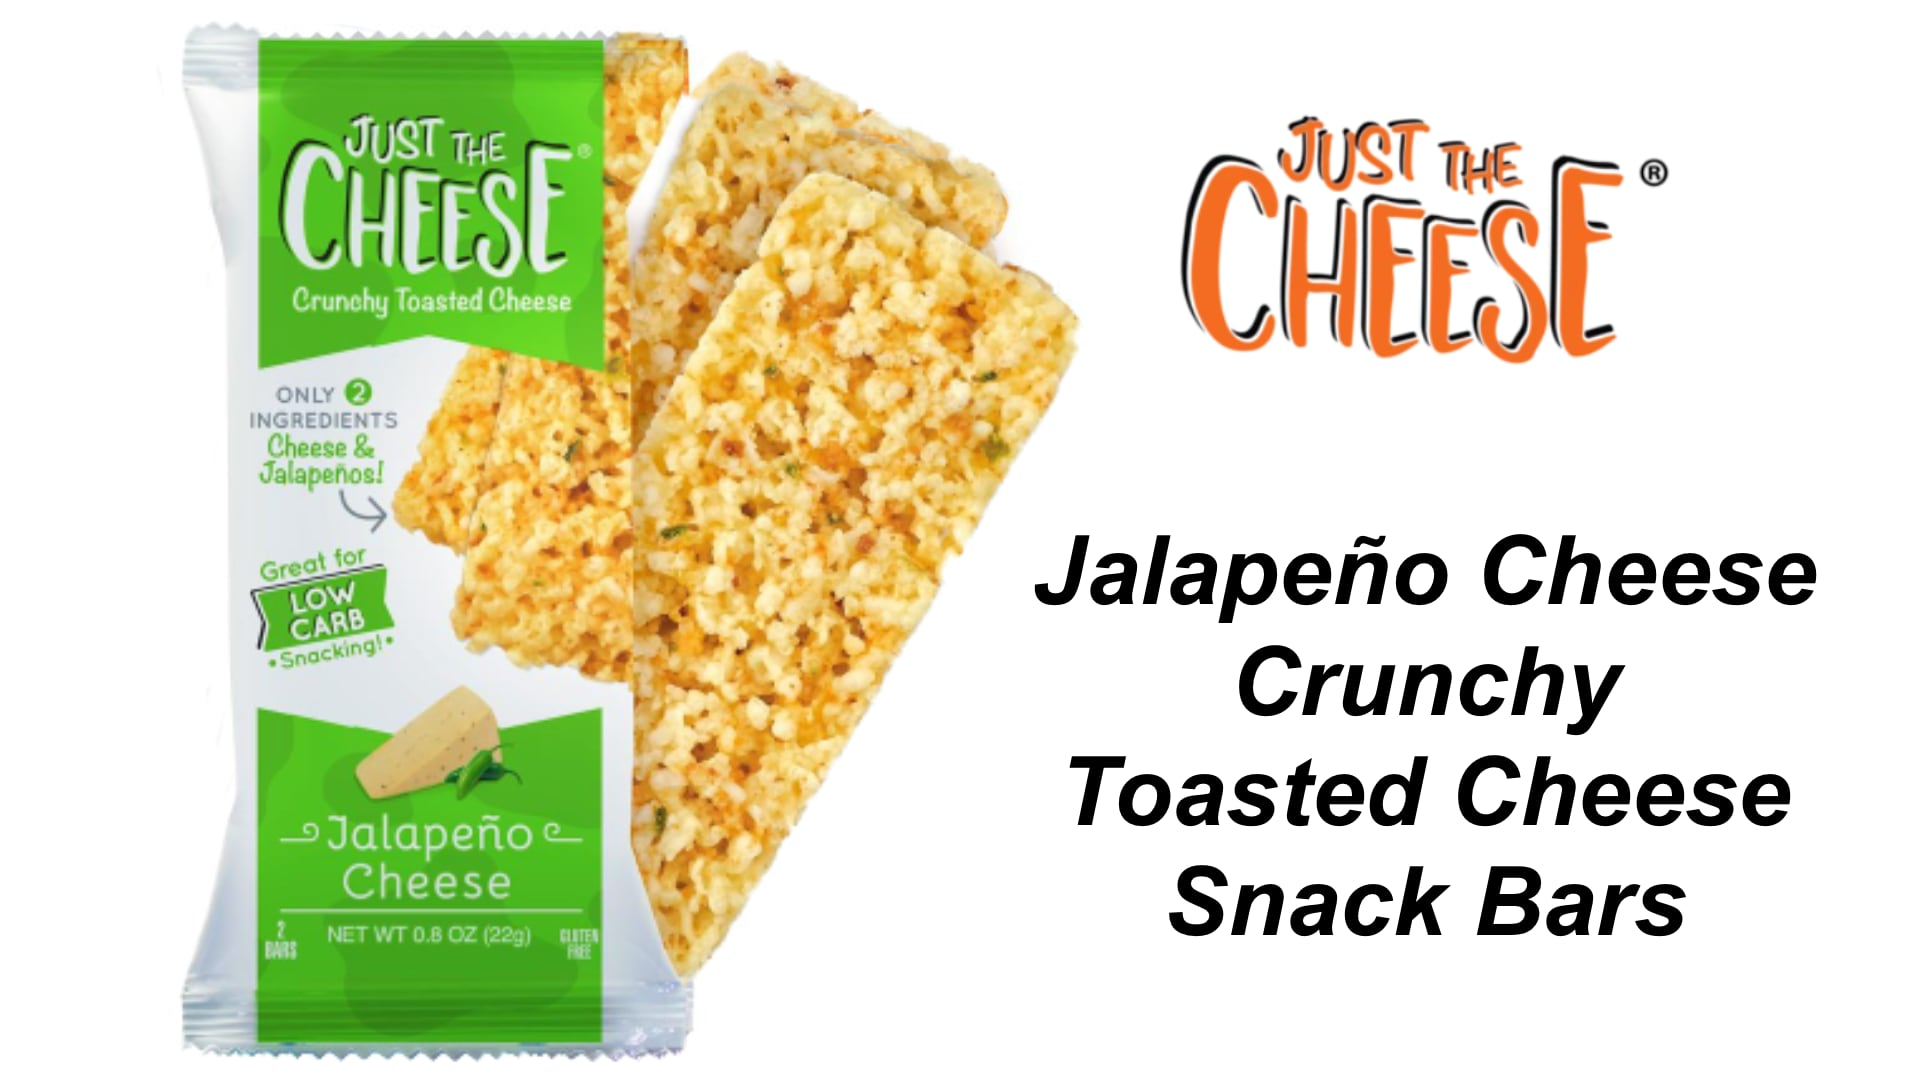 Just the Cheese Just The Cheese Jalapeño Cheese Snack Bars